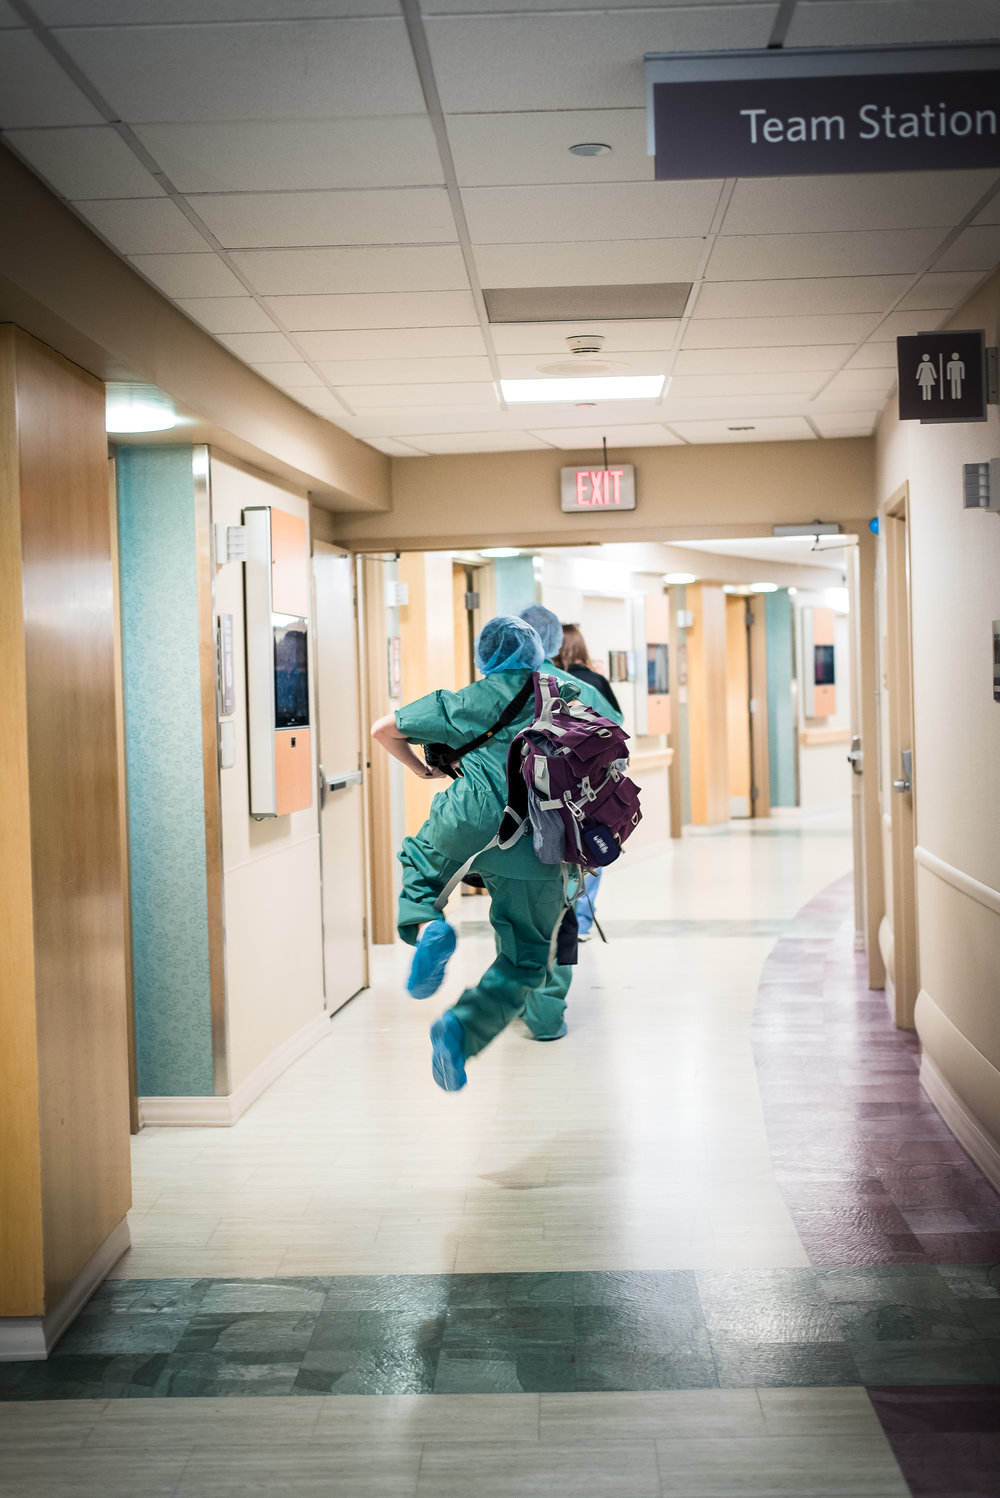 Skipping down the hall to operating room for cesarean